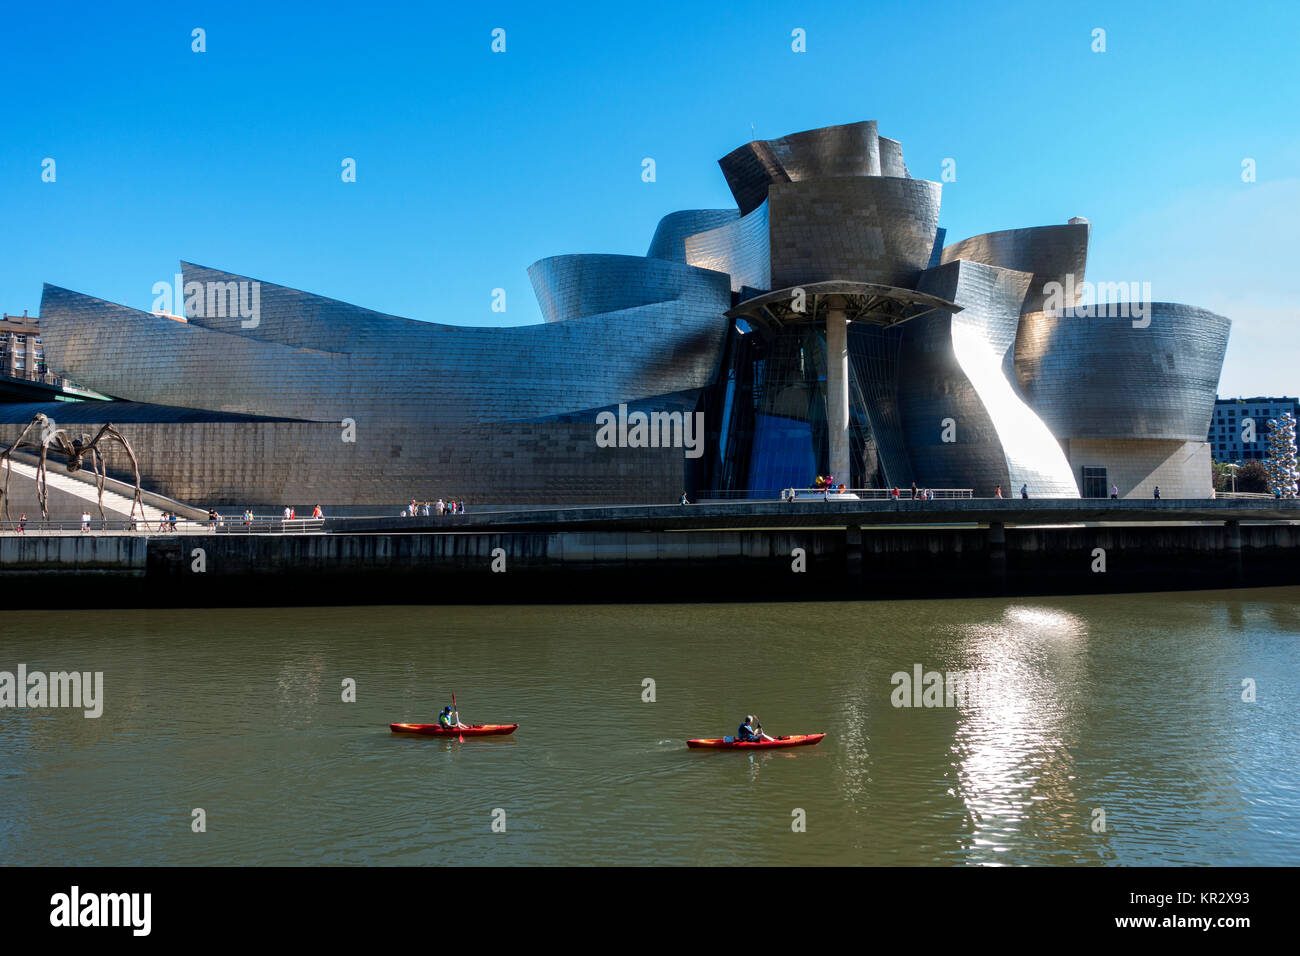 Guggenheim Museum Bilbao.Spain.Architect:Frank Gehry - Stock Image